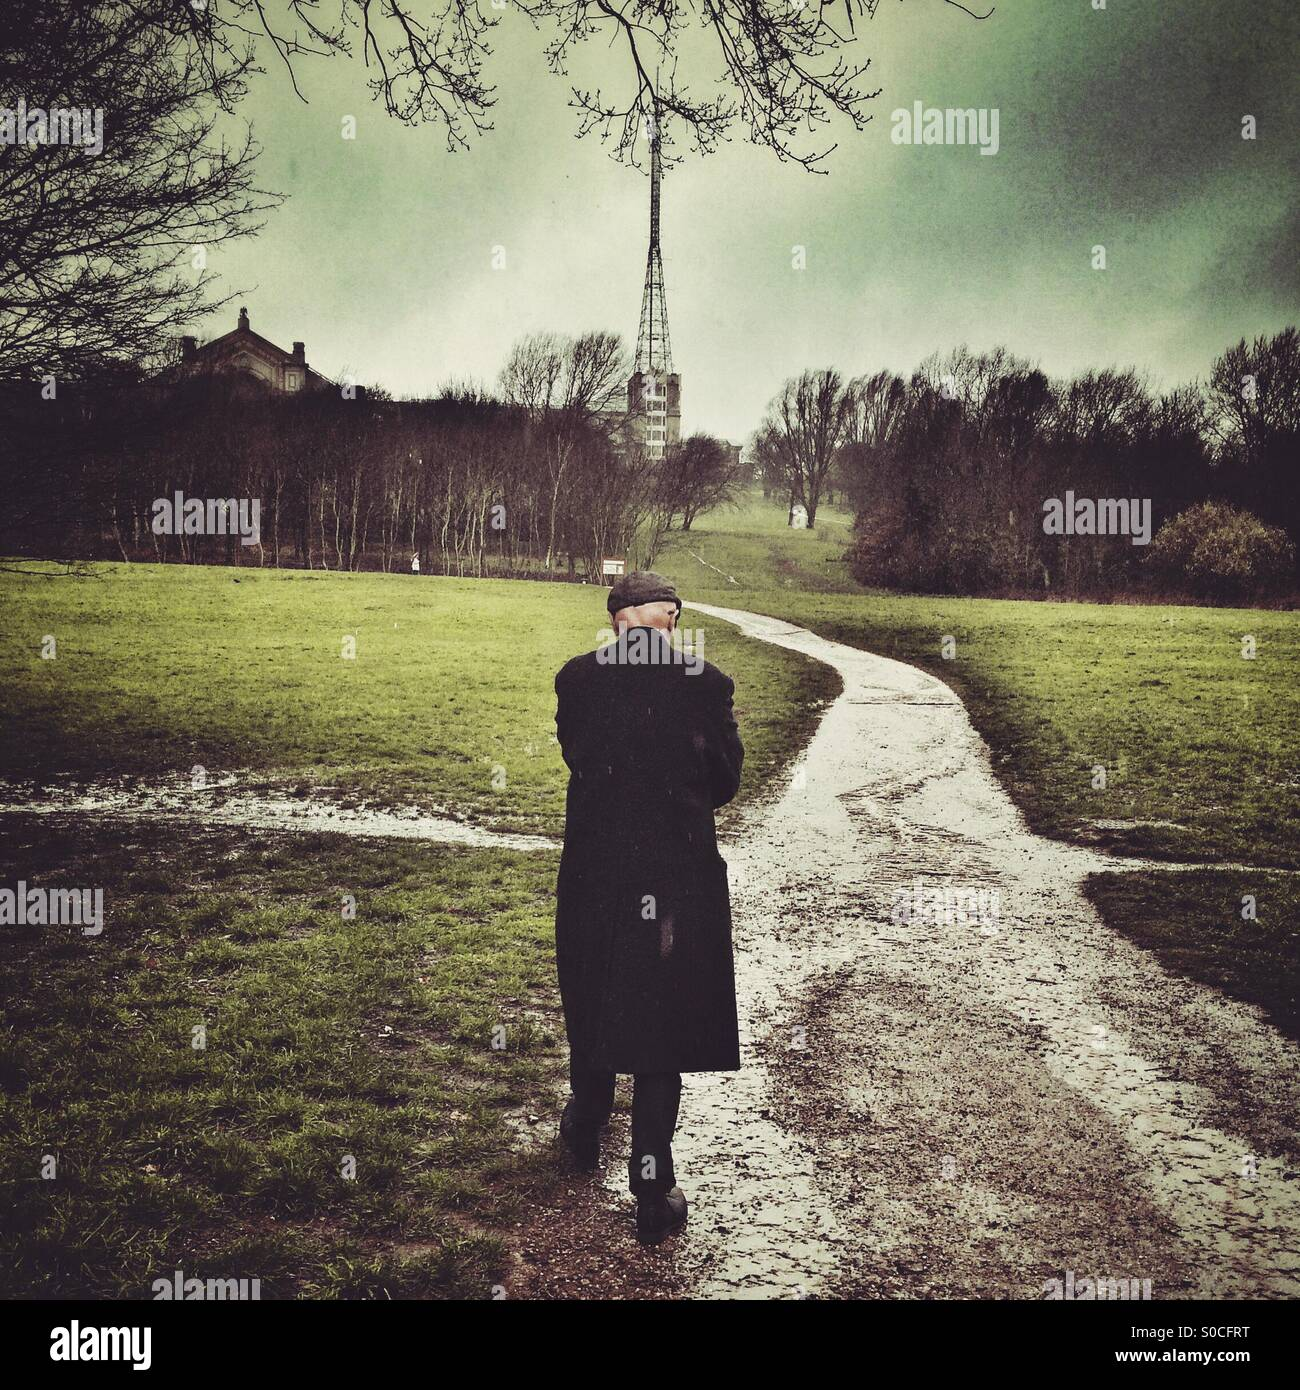 A man walking in the park at Alexandra Palace - Stock Image